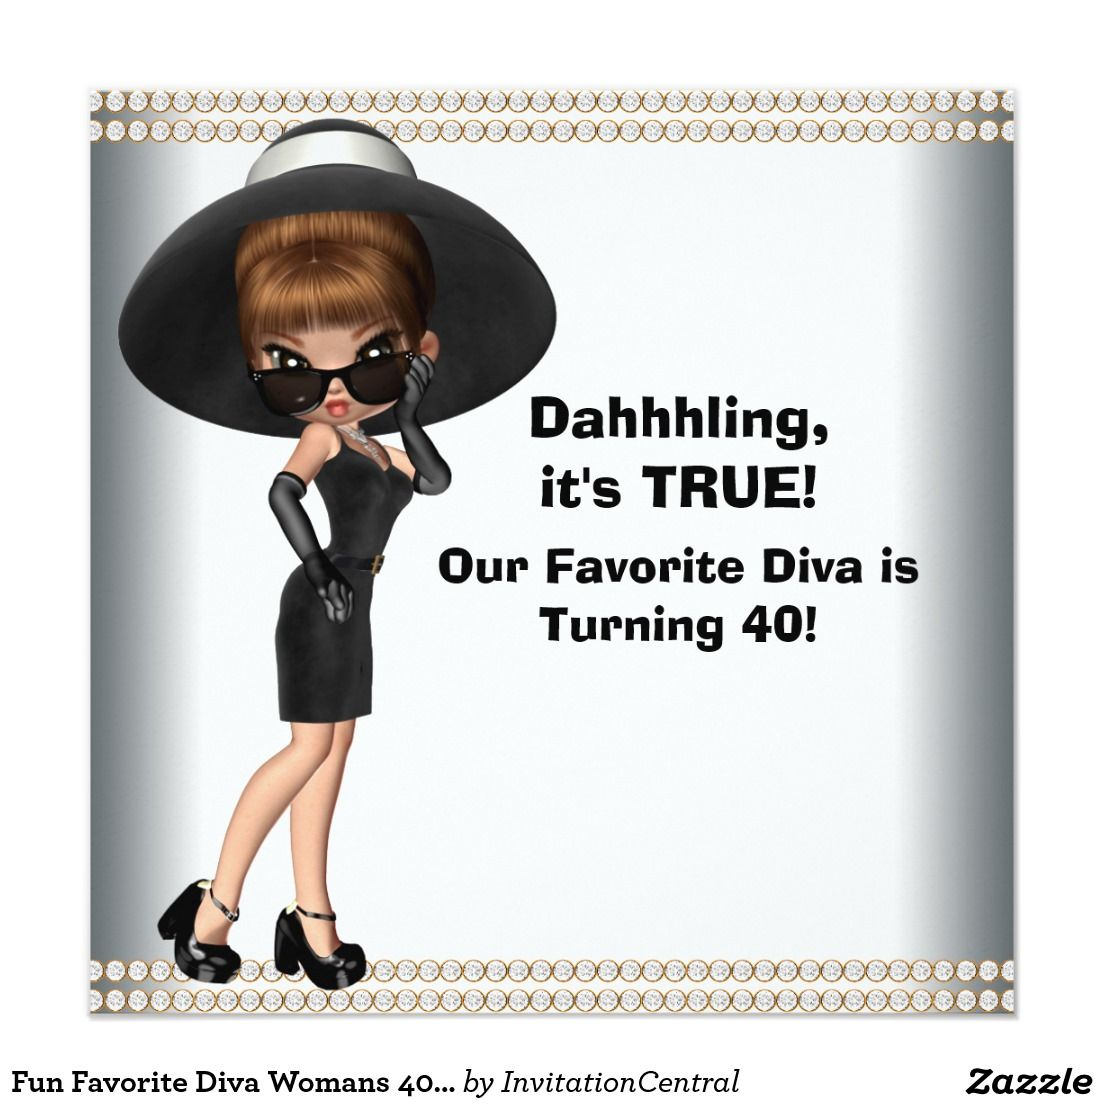 Fun Favorite Diva Womans Any Number Birthday Party Invitation 40th